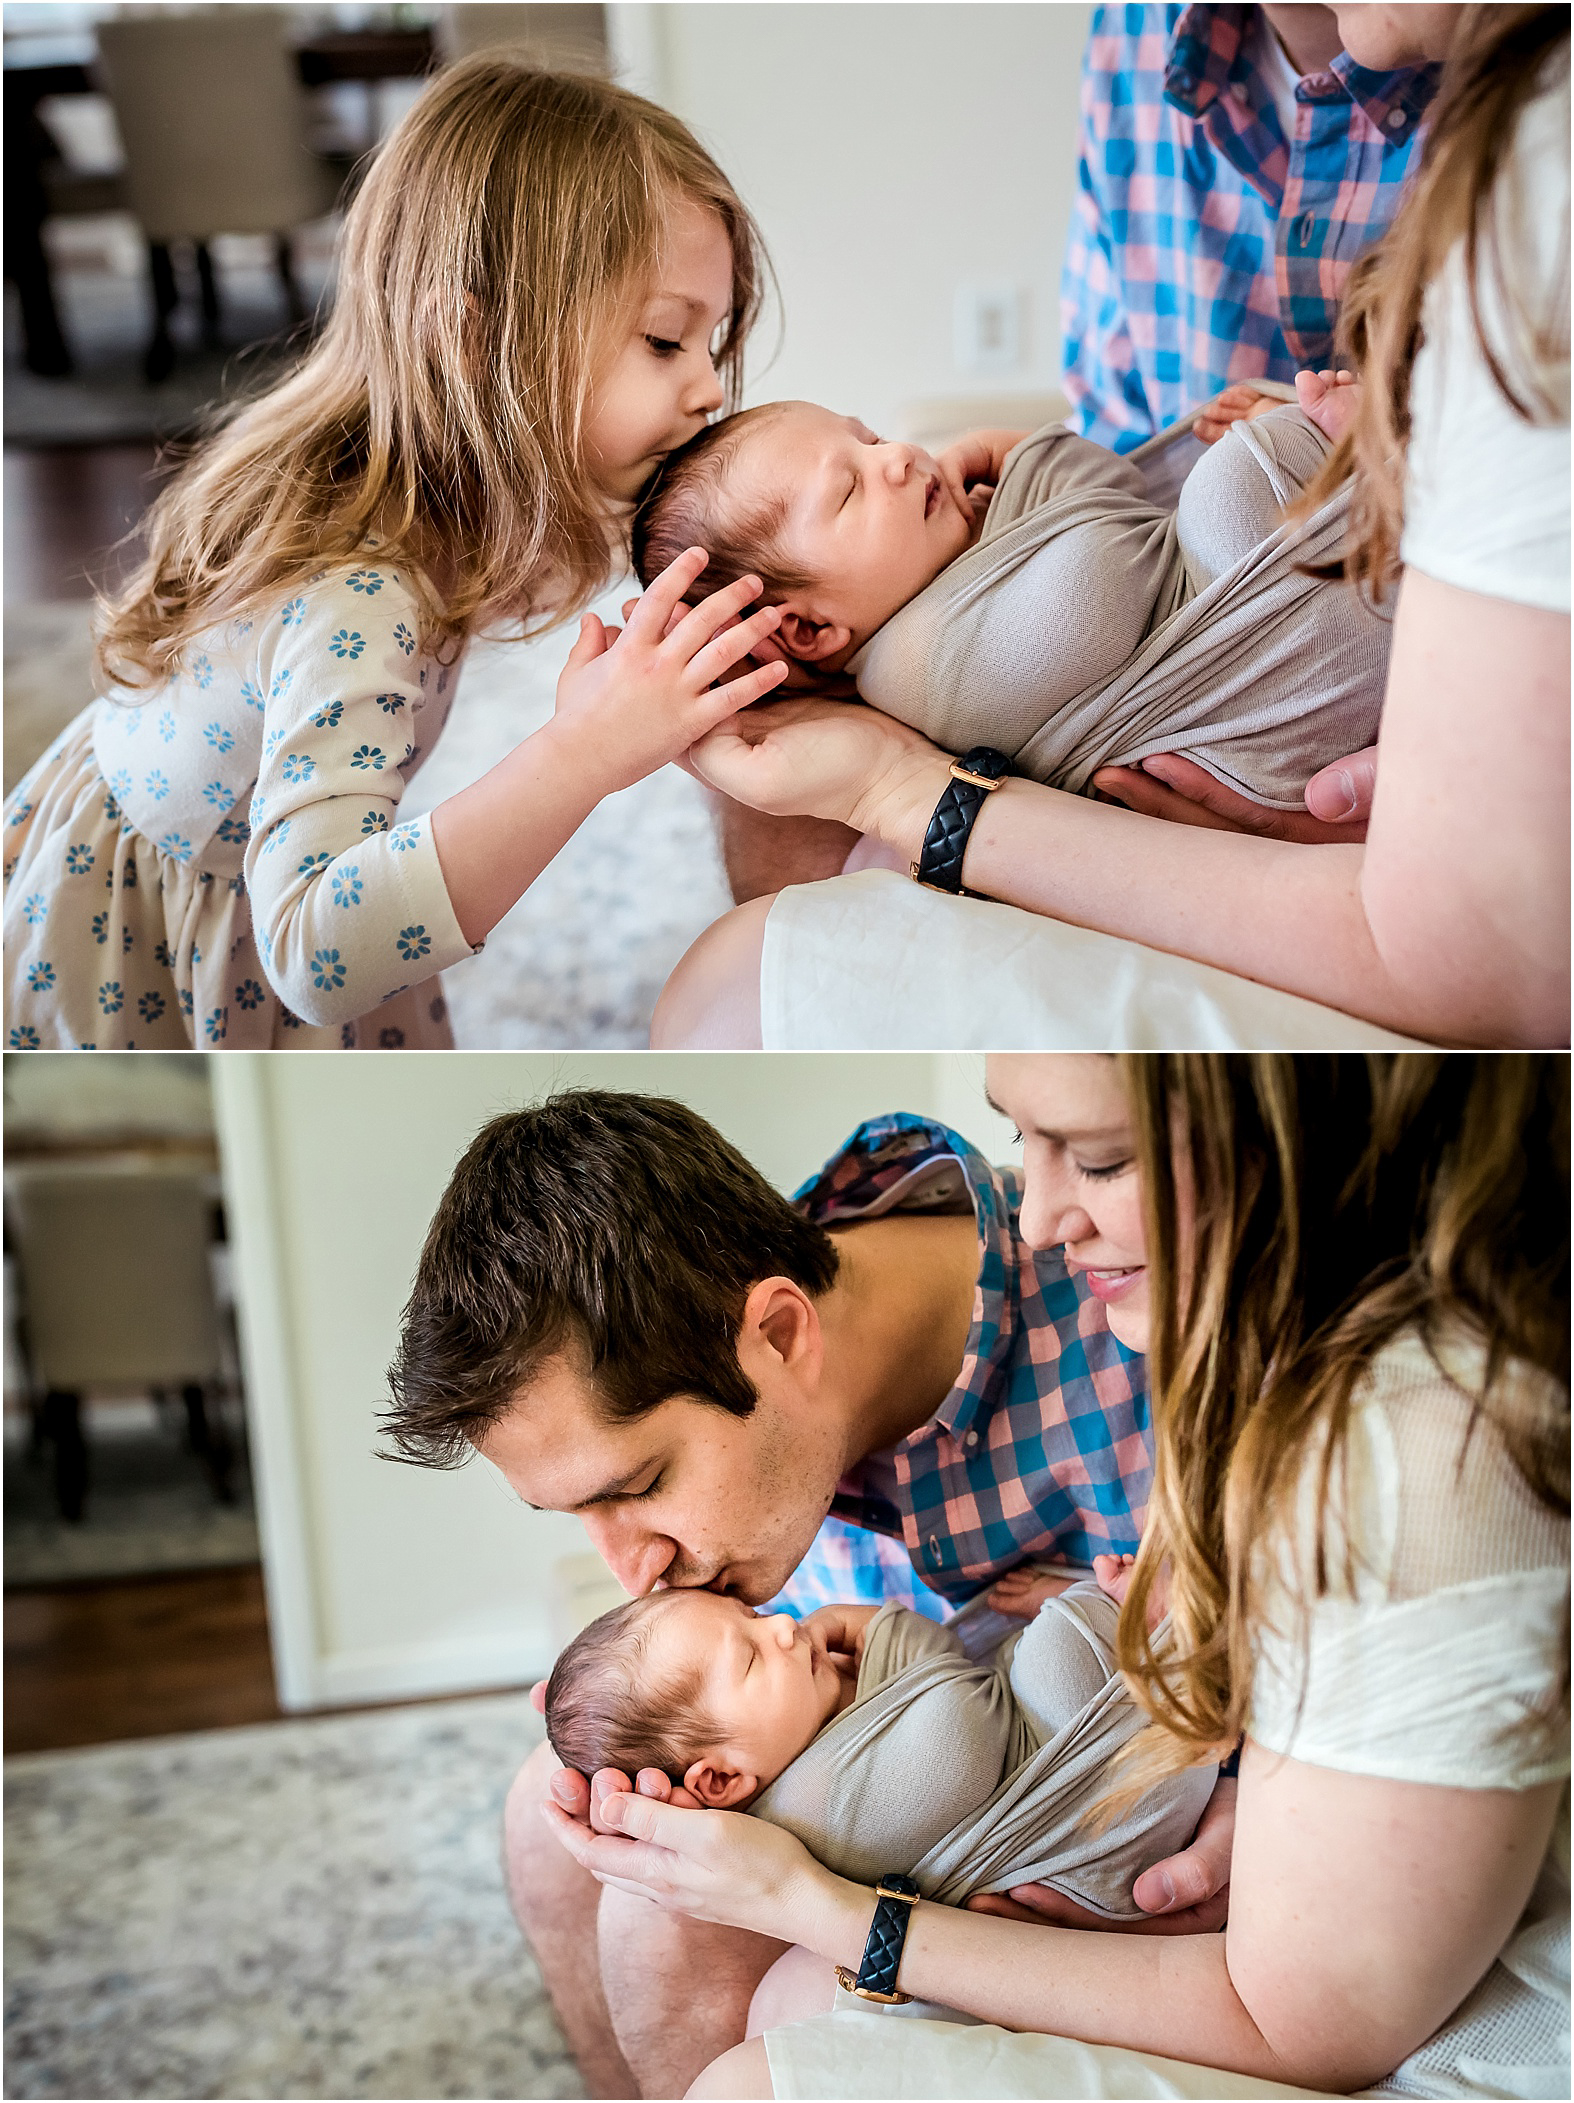 This Katy, Texas in-home newborn lifestyle session was full of bis sister kisses and lots of cuddles from mom and dad. Baby girl even got a warm welcome from the family furbaby!